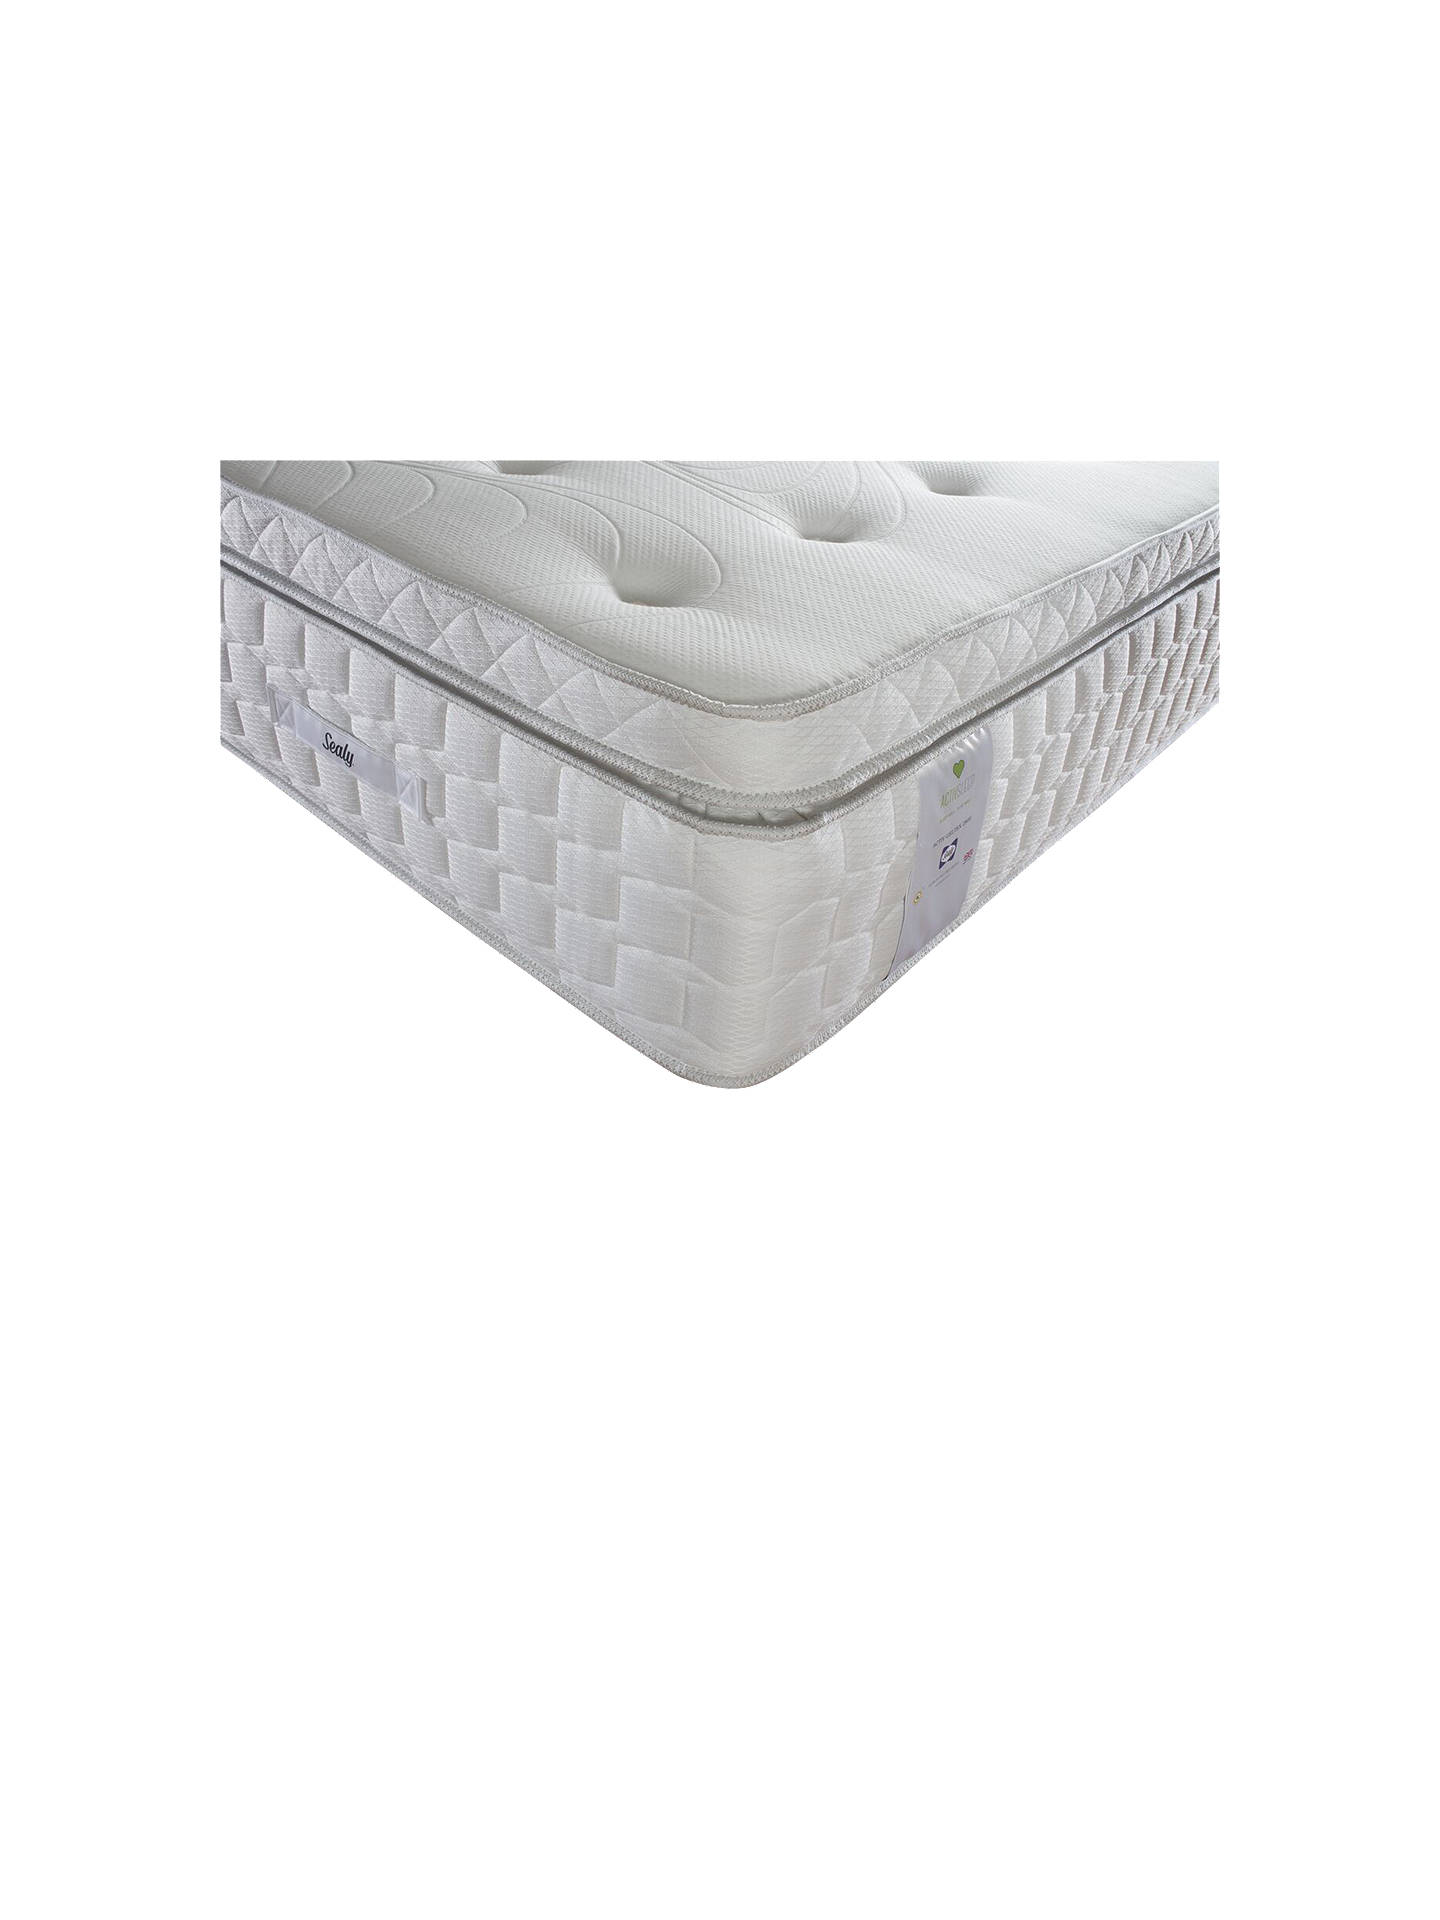 Buy Sealy Activsleep Geltex 2800 Box Top Pocket Spring, Medium, Super King Size Online at johnlewis.com